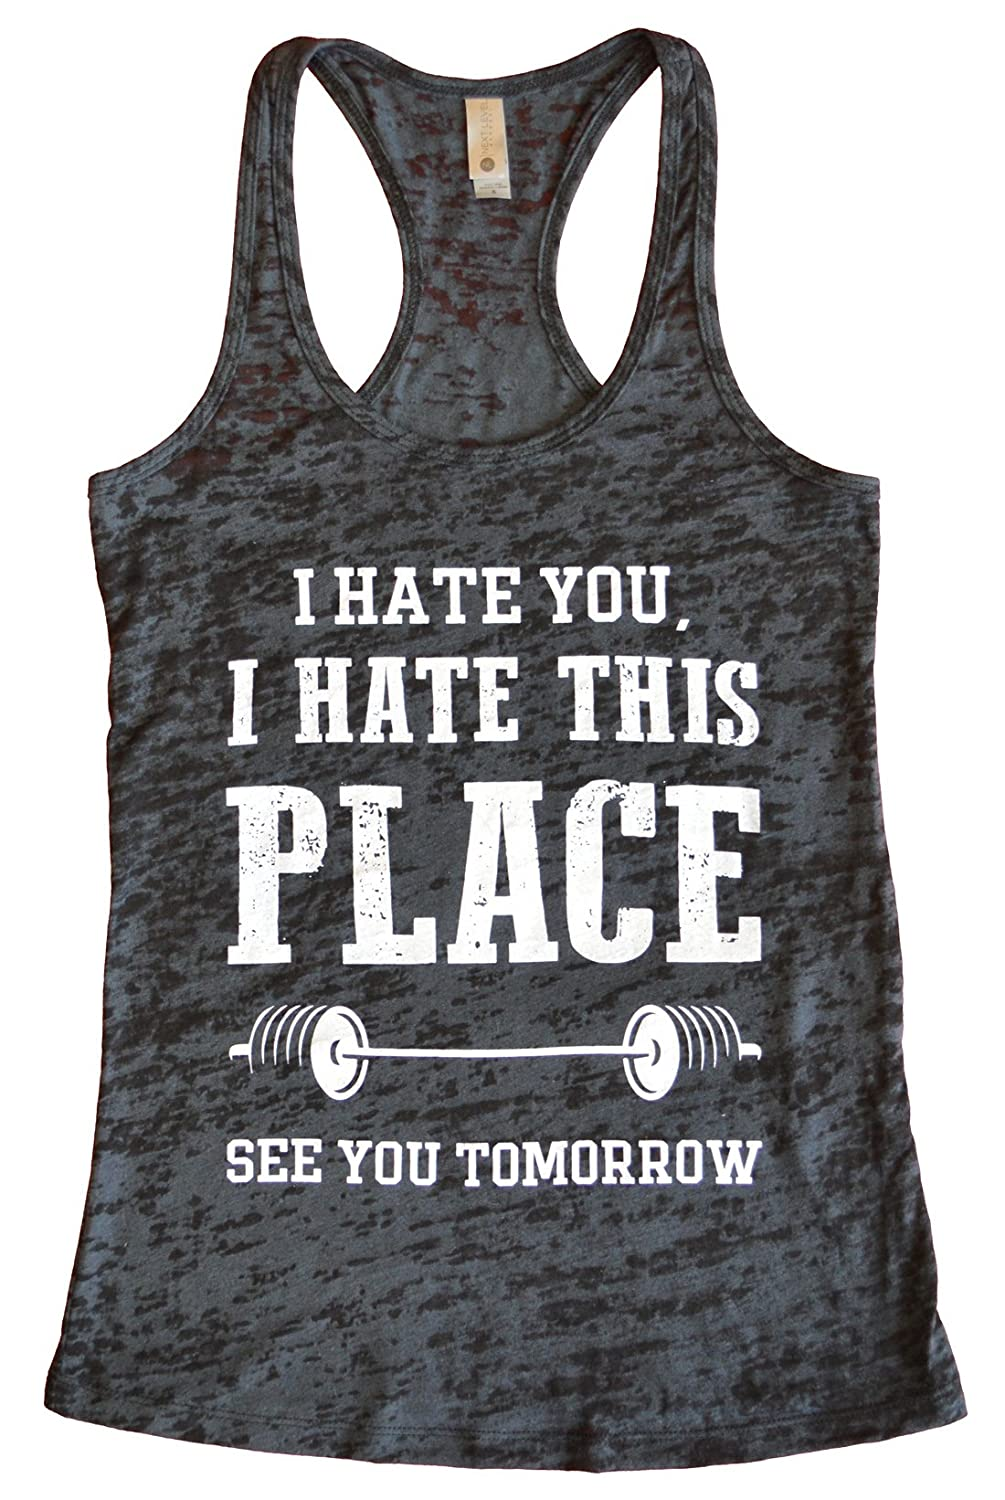 274f3ede1e70 Amazon.com  Funny Threadz I Hate You I Hate This Place See You Tomorrow  Women s Fitness Gym Burnout Tank Top  Clothing